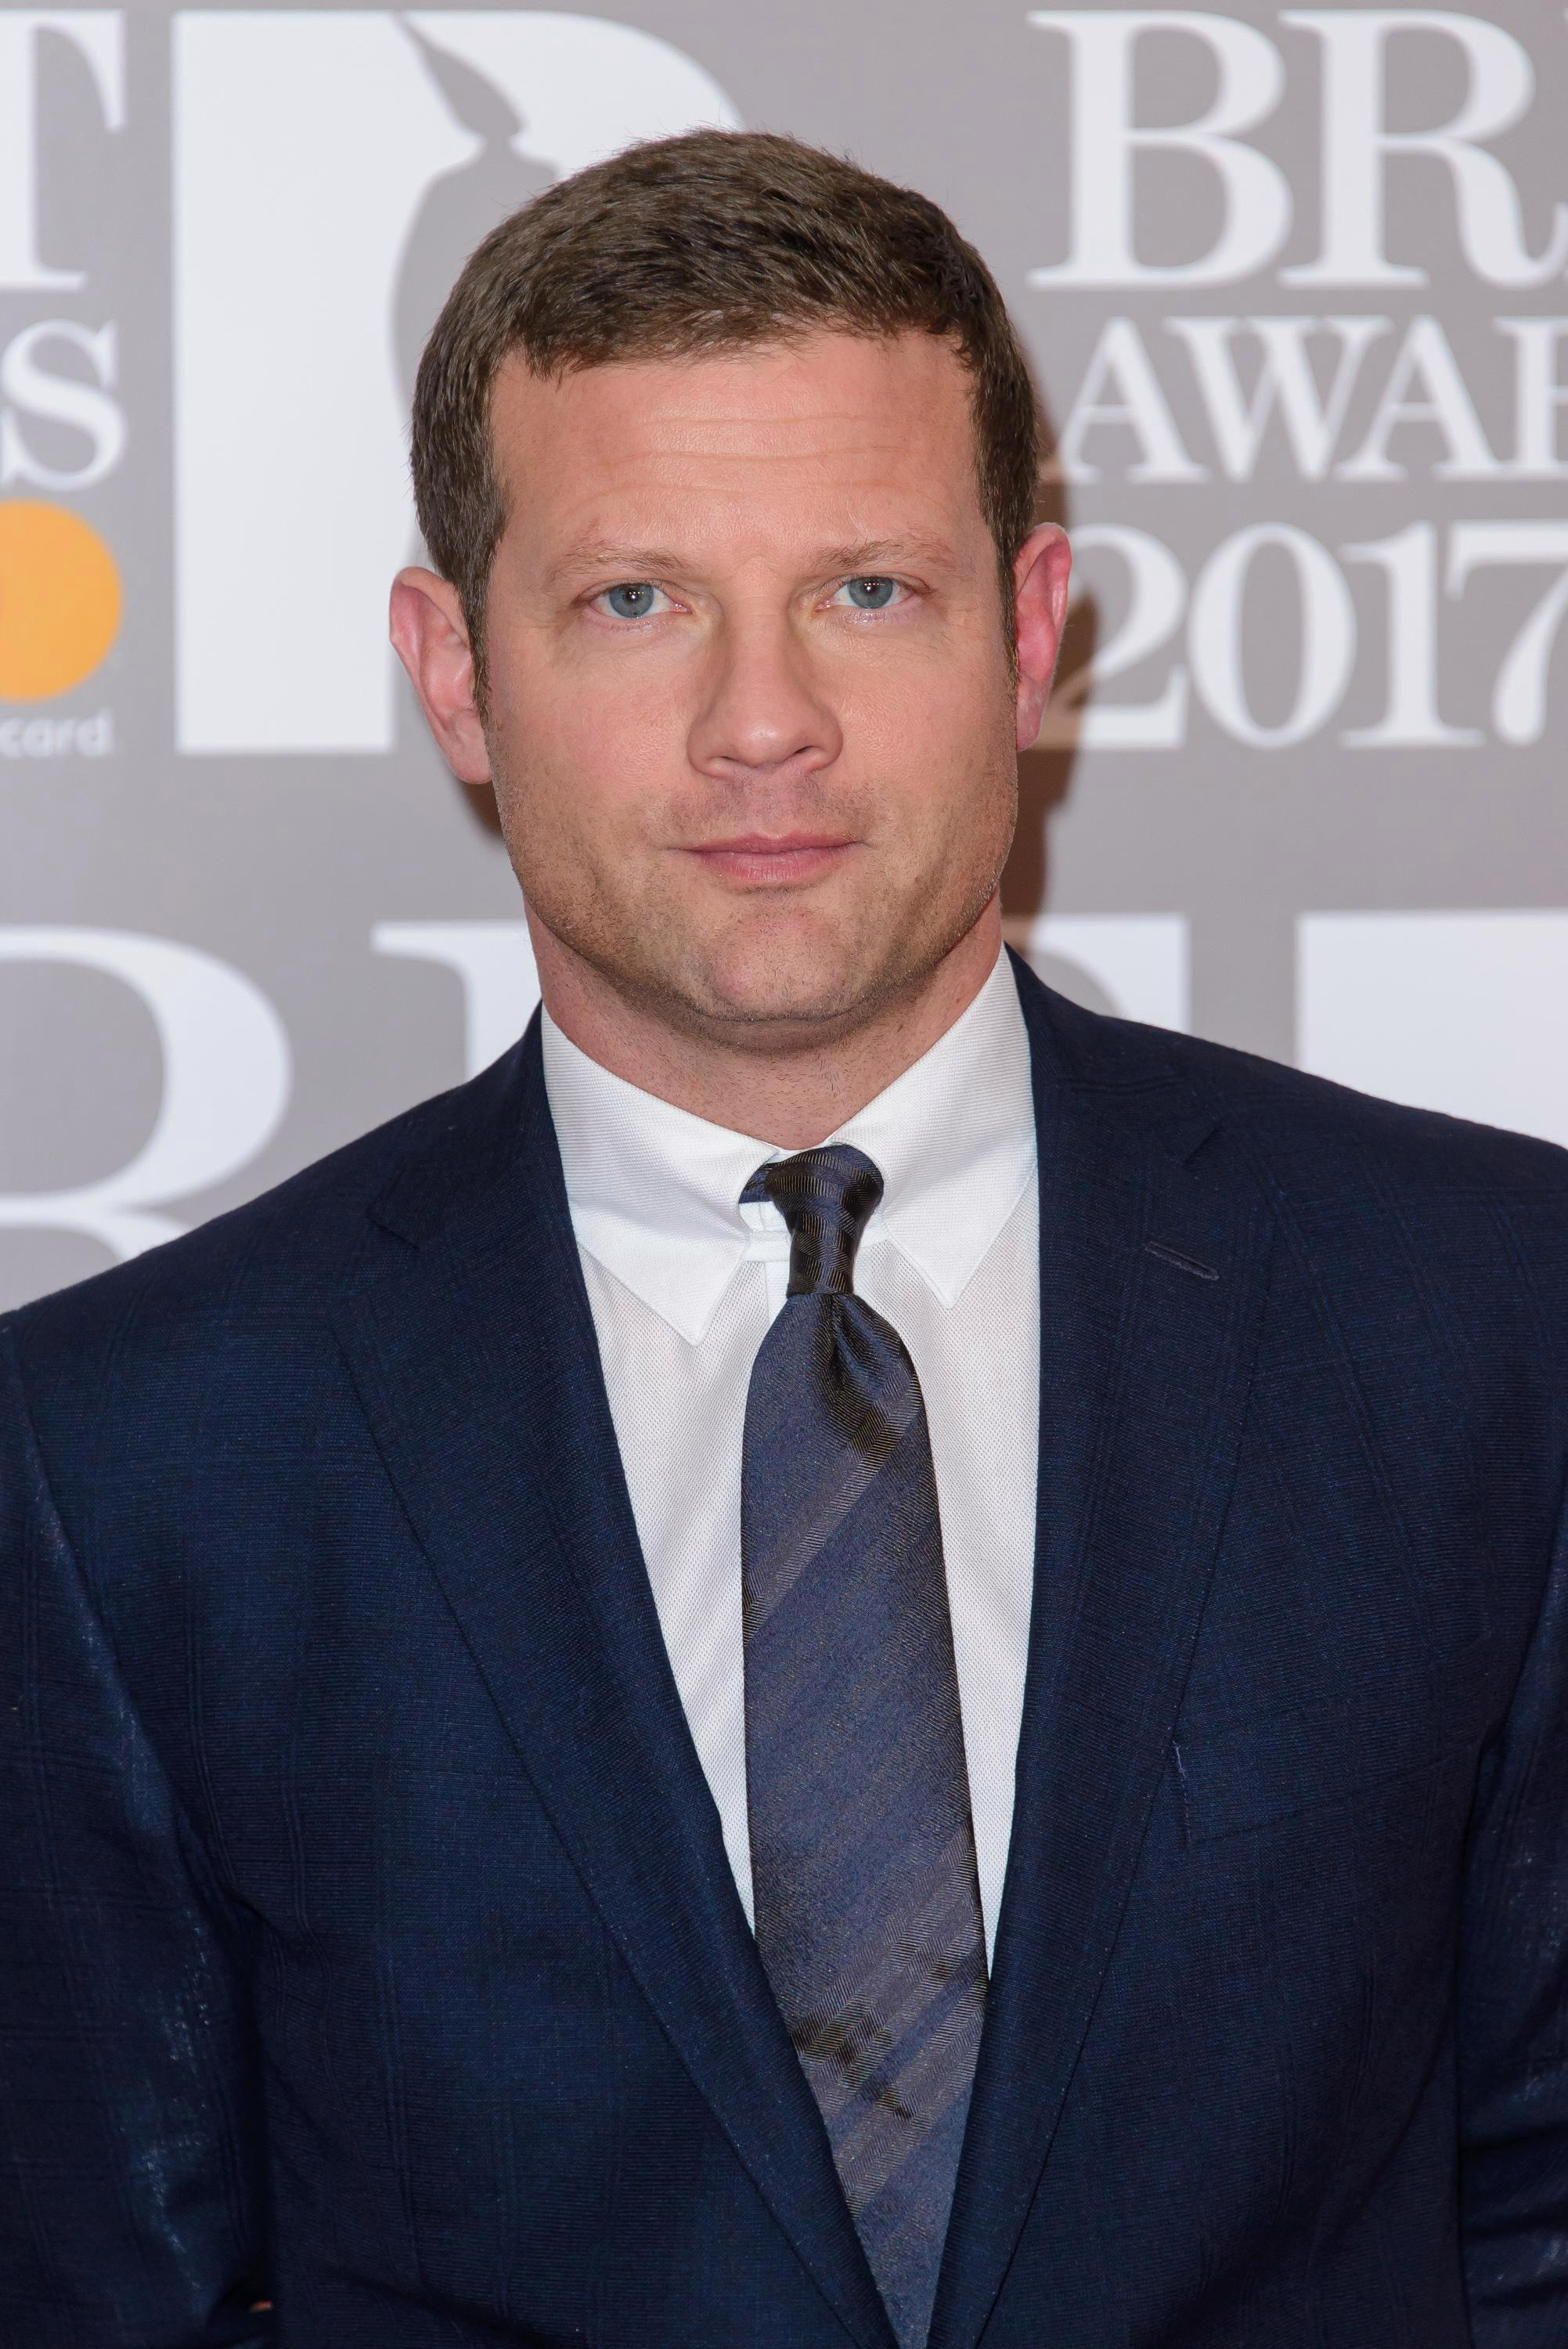 How tall is Dermot O'Leary?